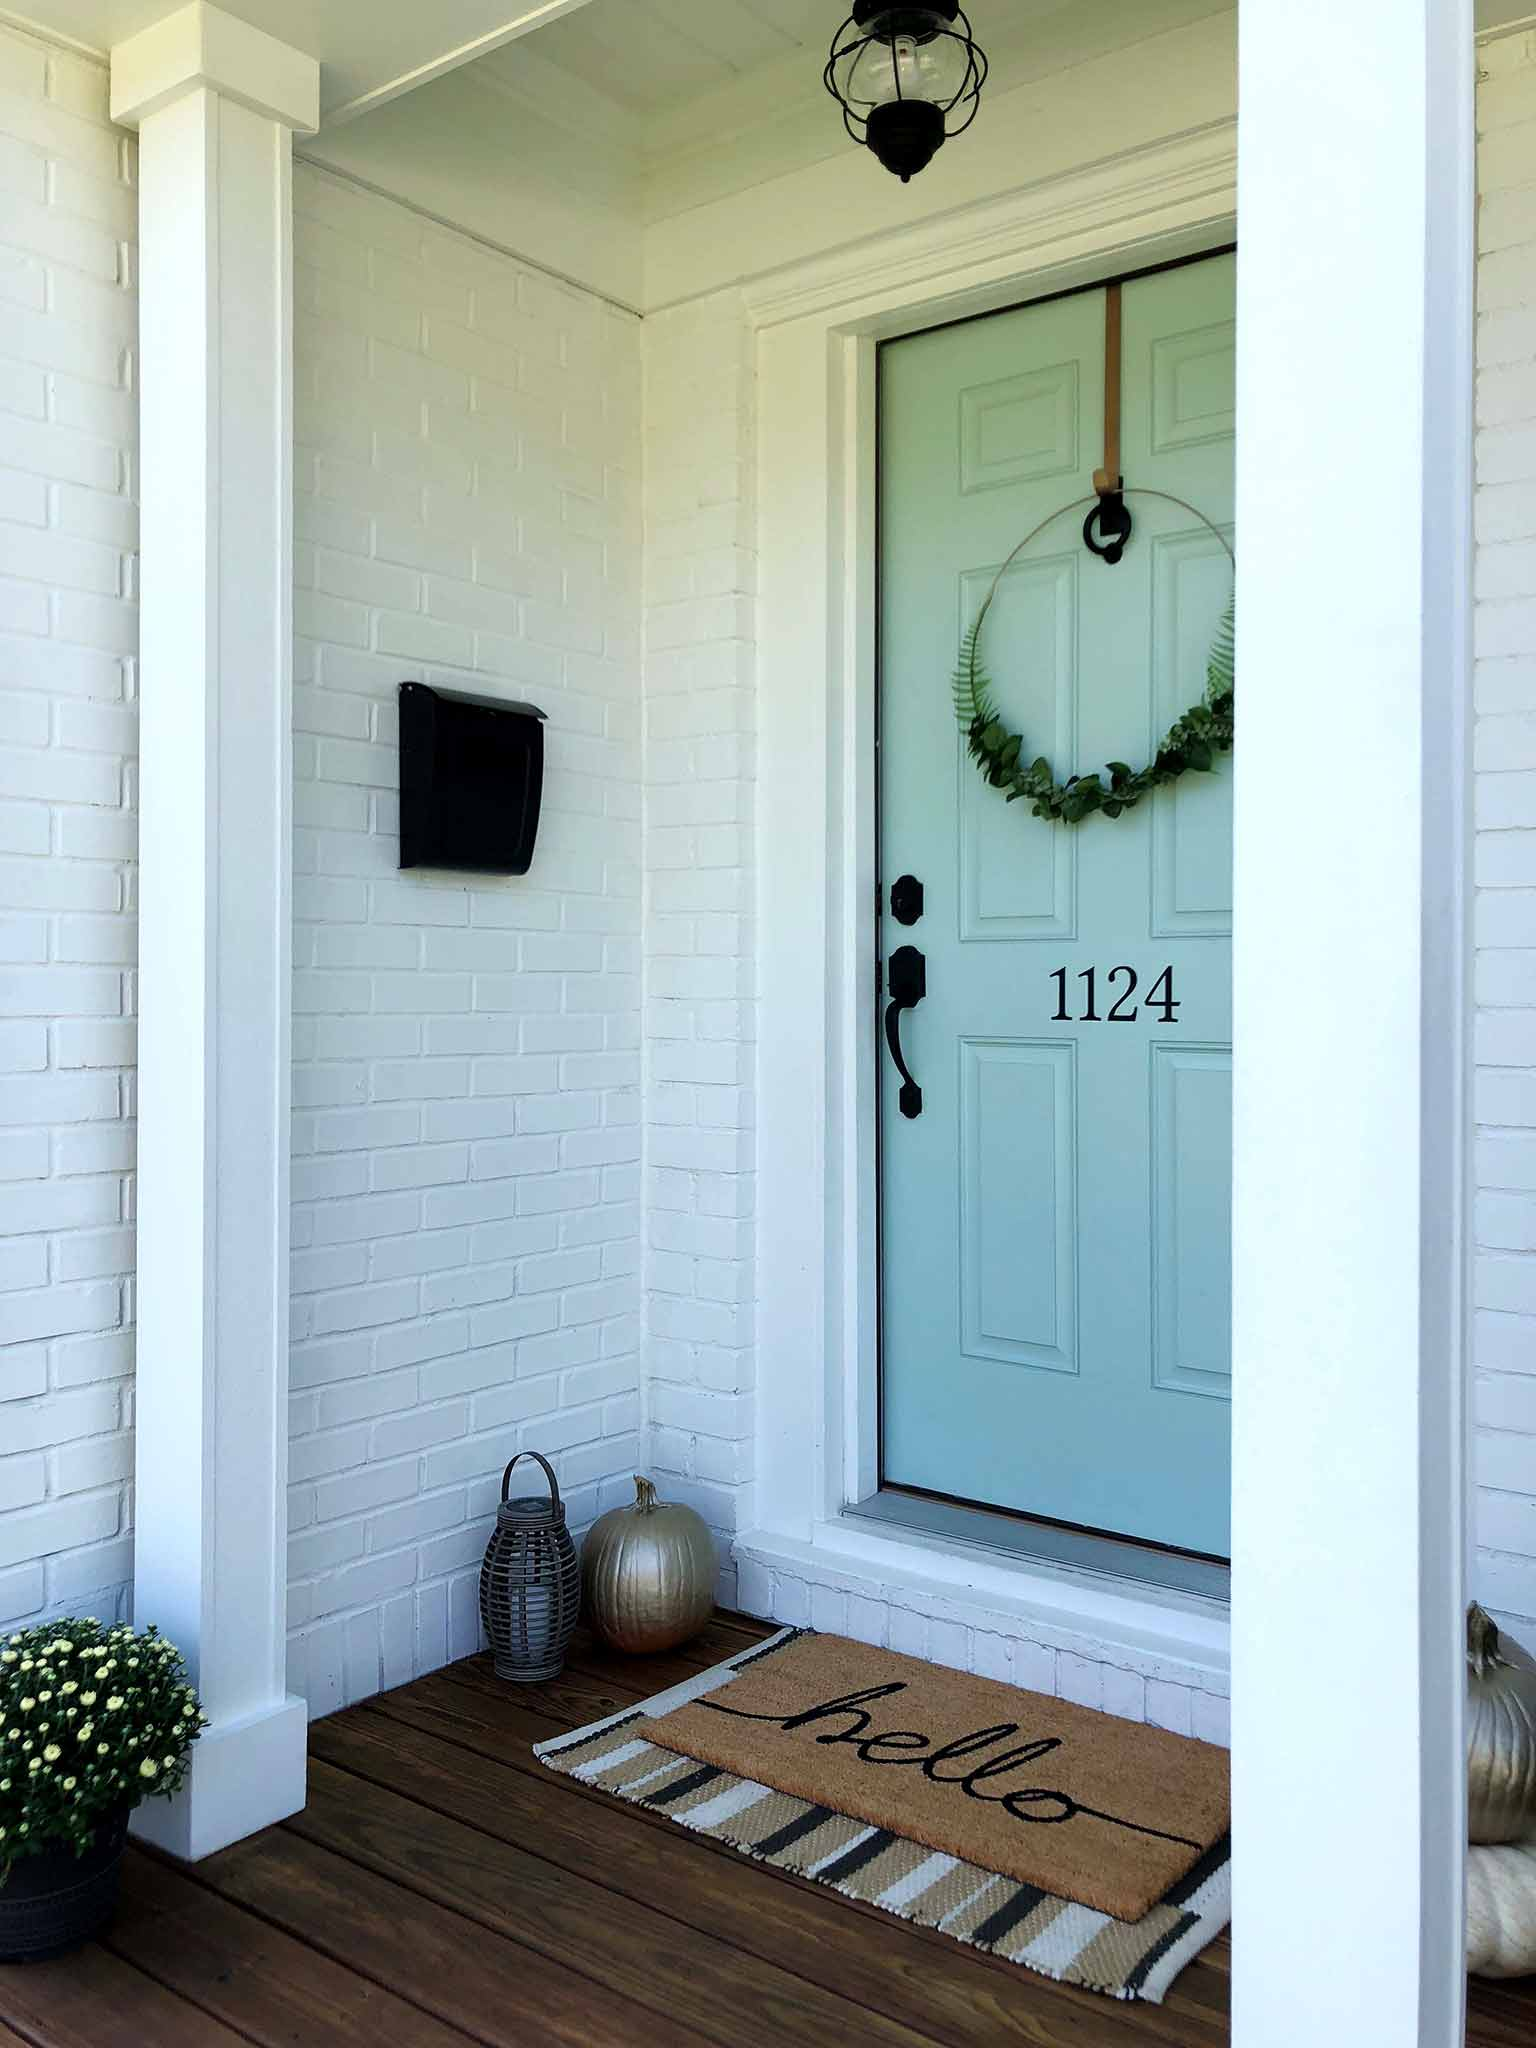 Front porch - how to make a minimalist fall wreath - That Homebird Life Blog